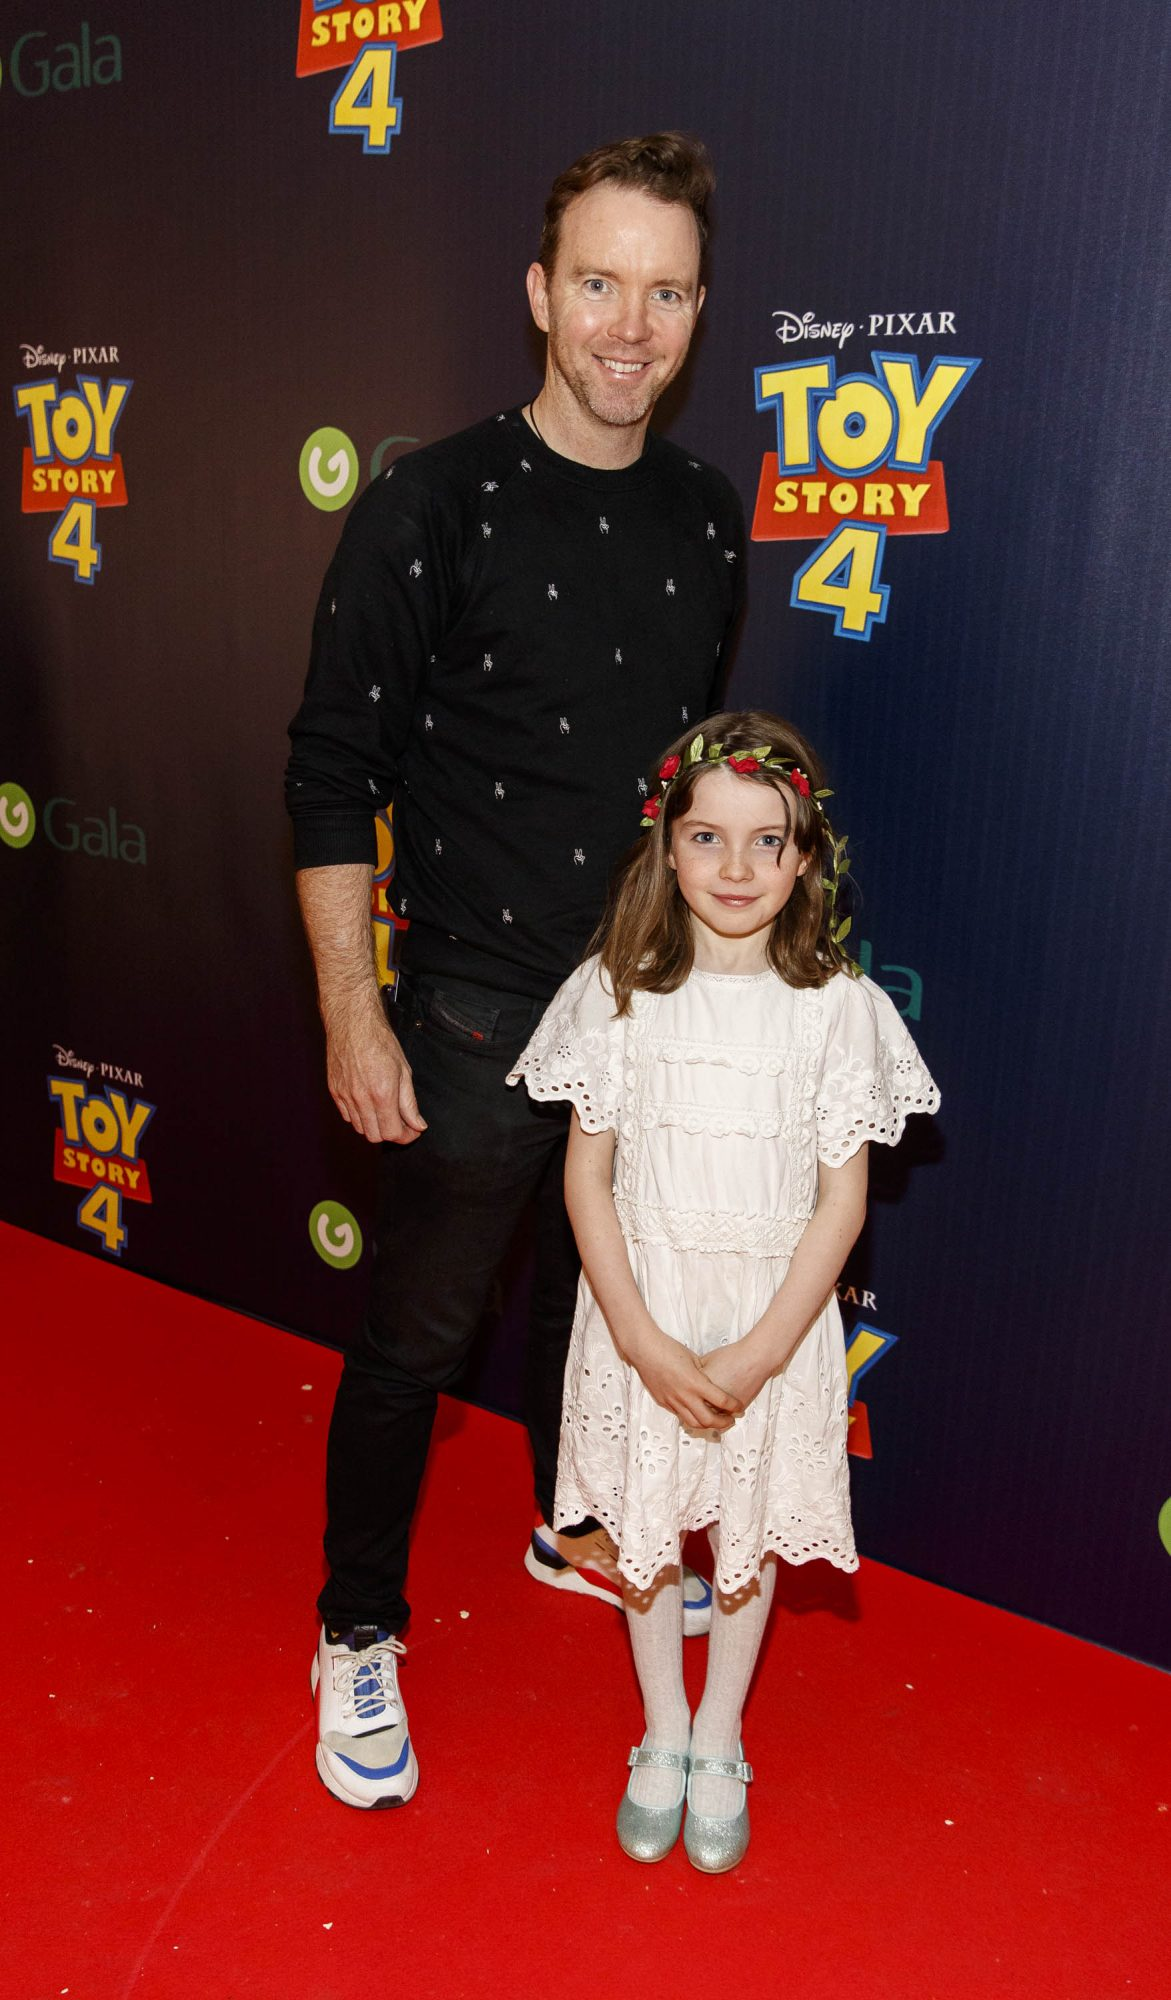 Dermot Whelan and daughter Rose pictured at the special event screening of Disney Pixar's TOY STORY 4 in the Light House Cinema Dublin. Picture: Andres Poveda